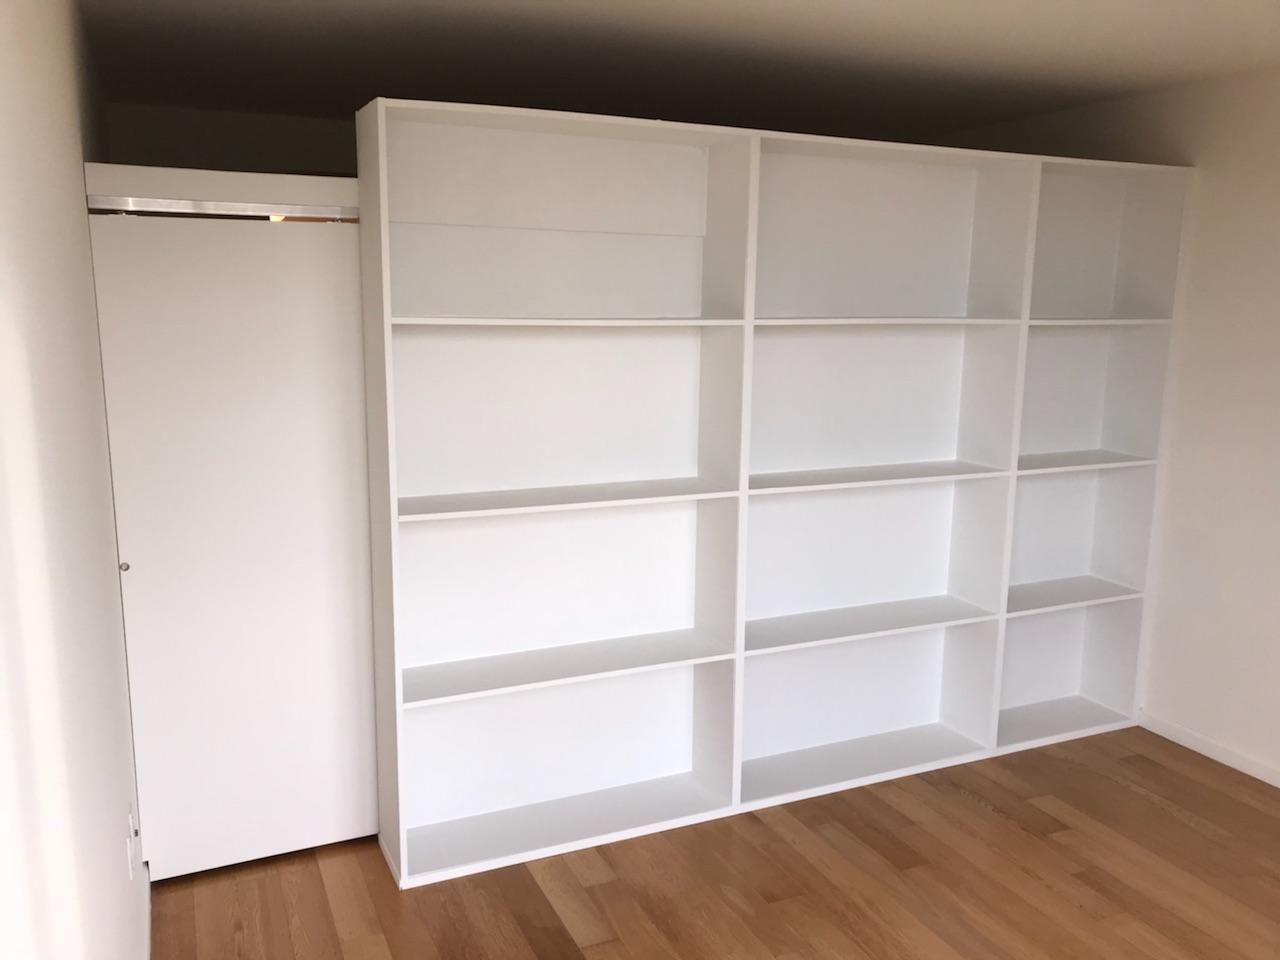 Freestanding Bookcase Wall With Sliding Door Call Us For All Your Custom Room Partition And Storage Inq Bookcase Wall Room Divider Bookcase Free Standing Wall